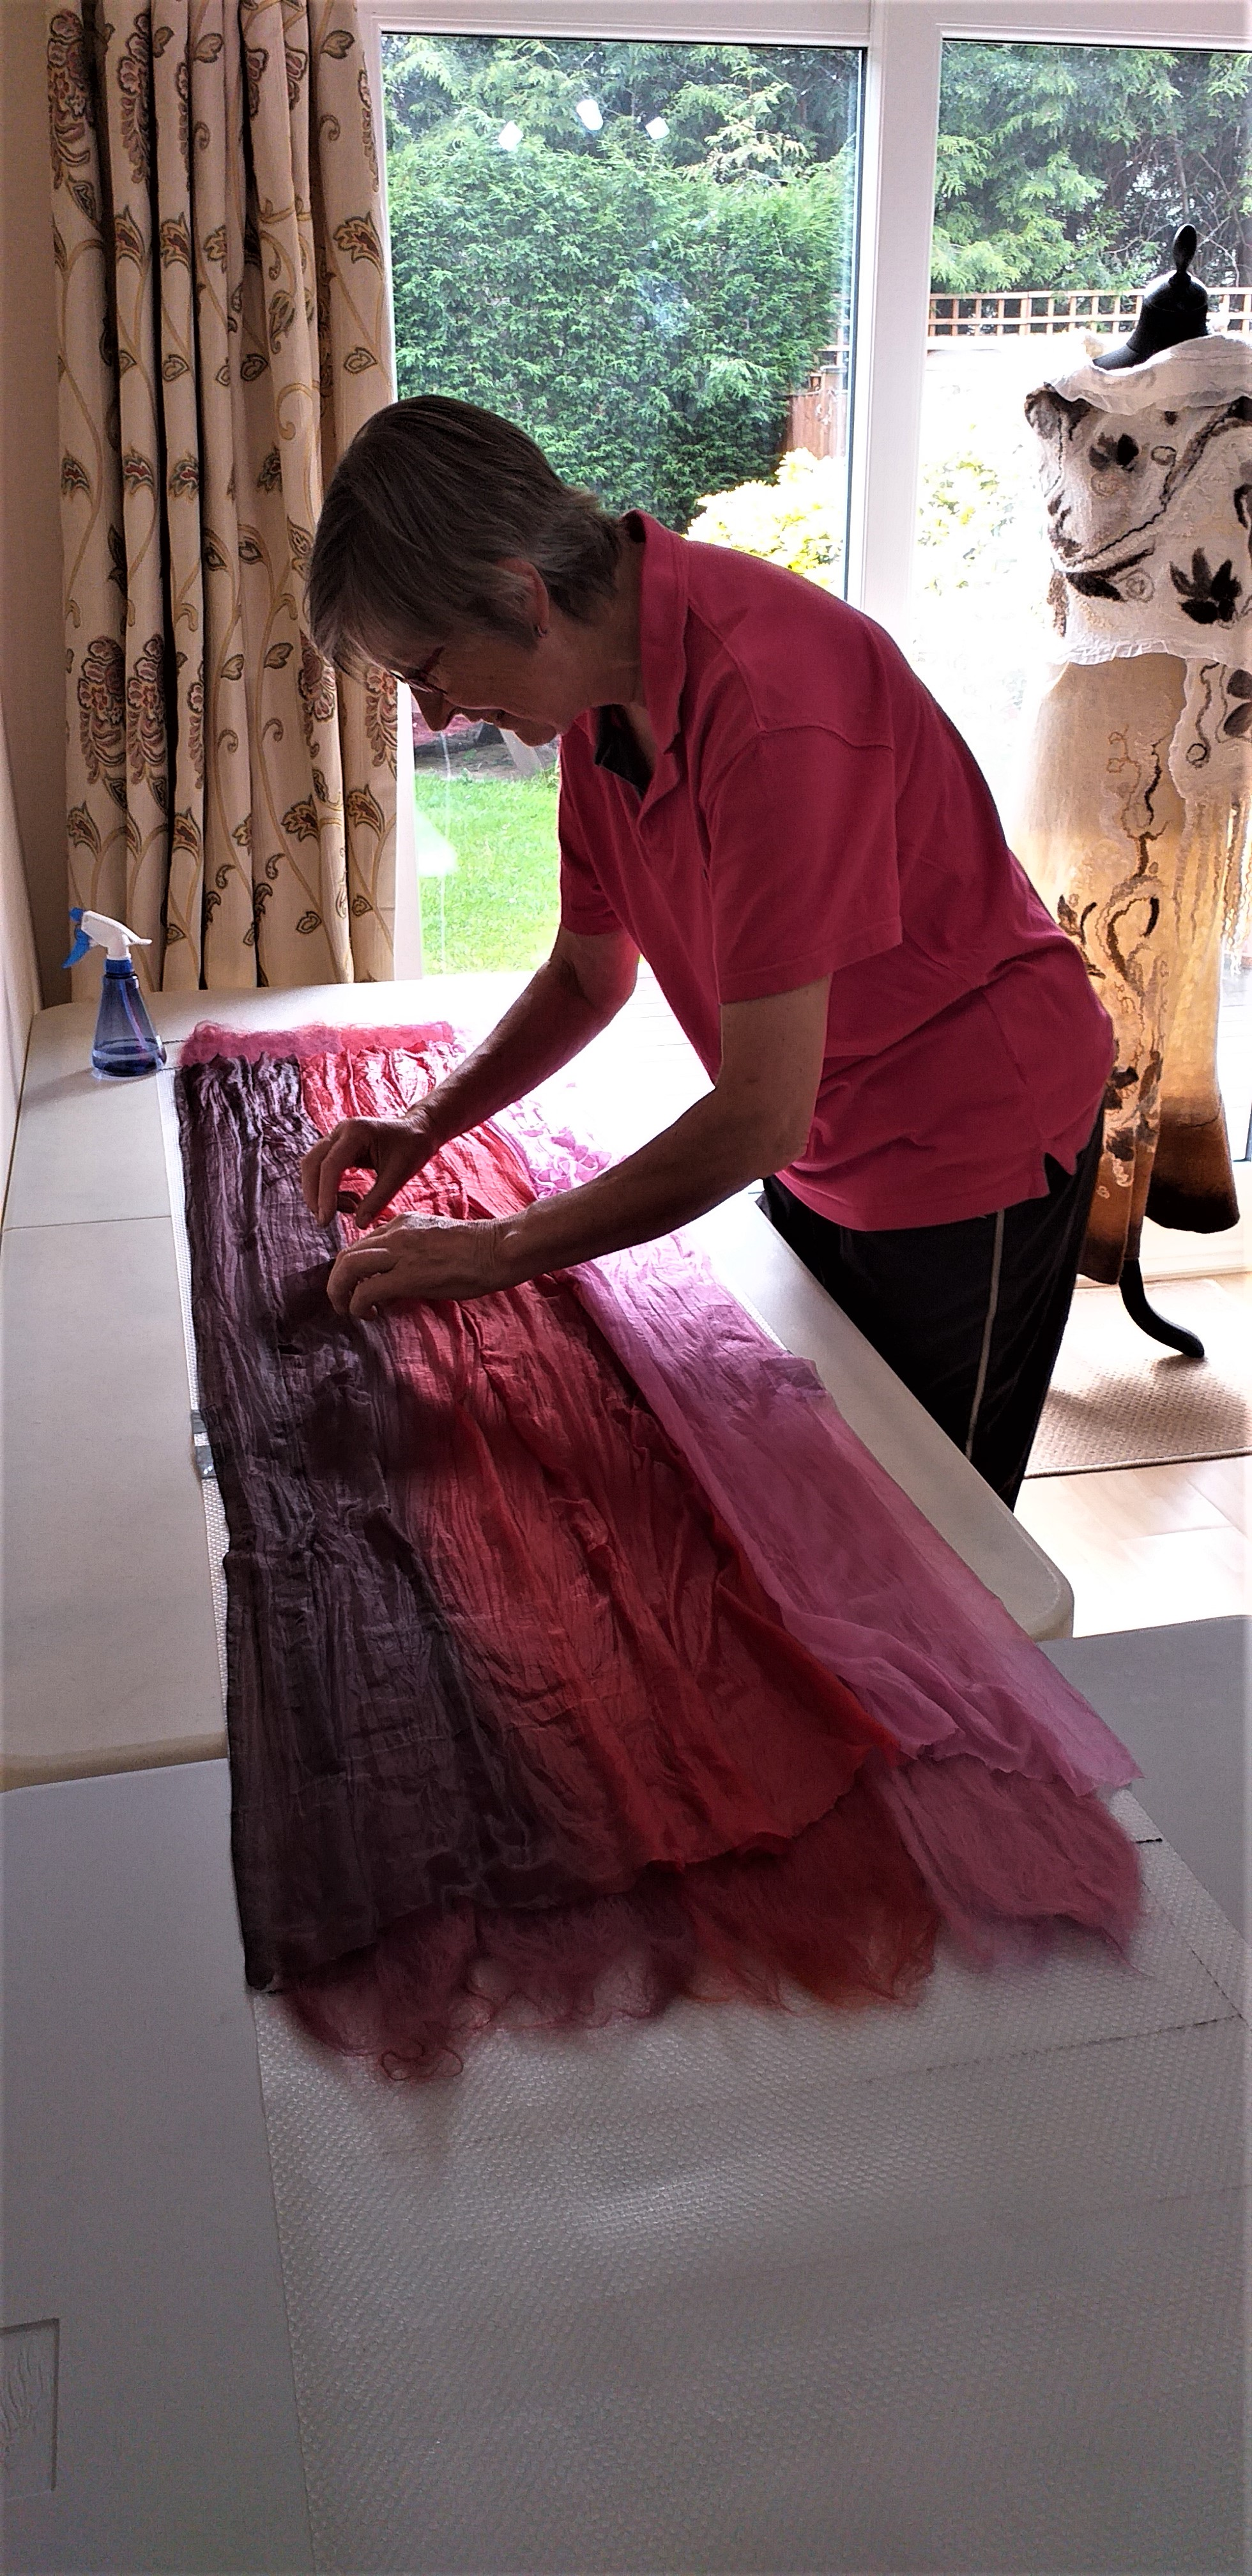 Laying silk fibres for a Nuno felt project at Magic Wool Art and Craft Studio in West Midlands